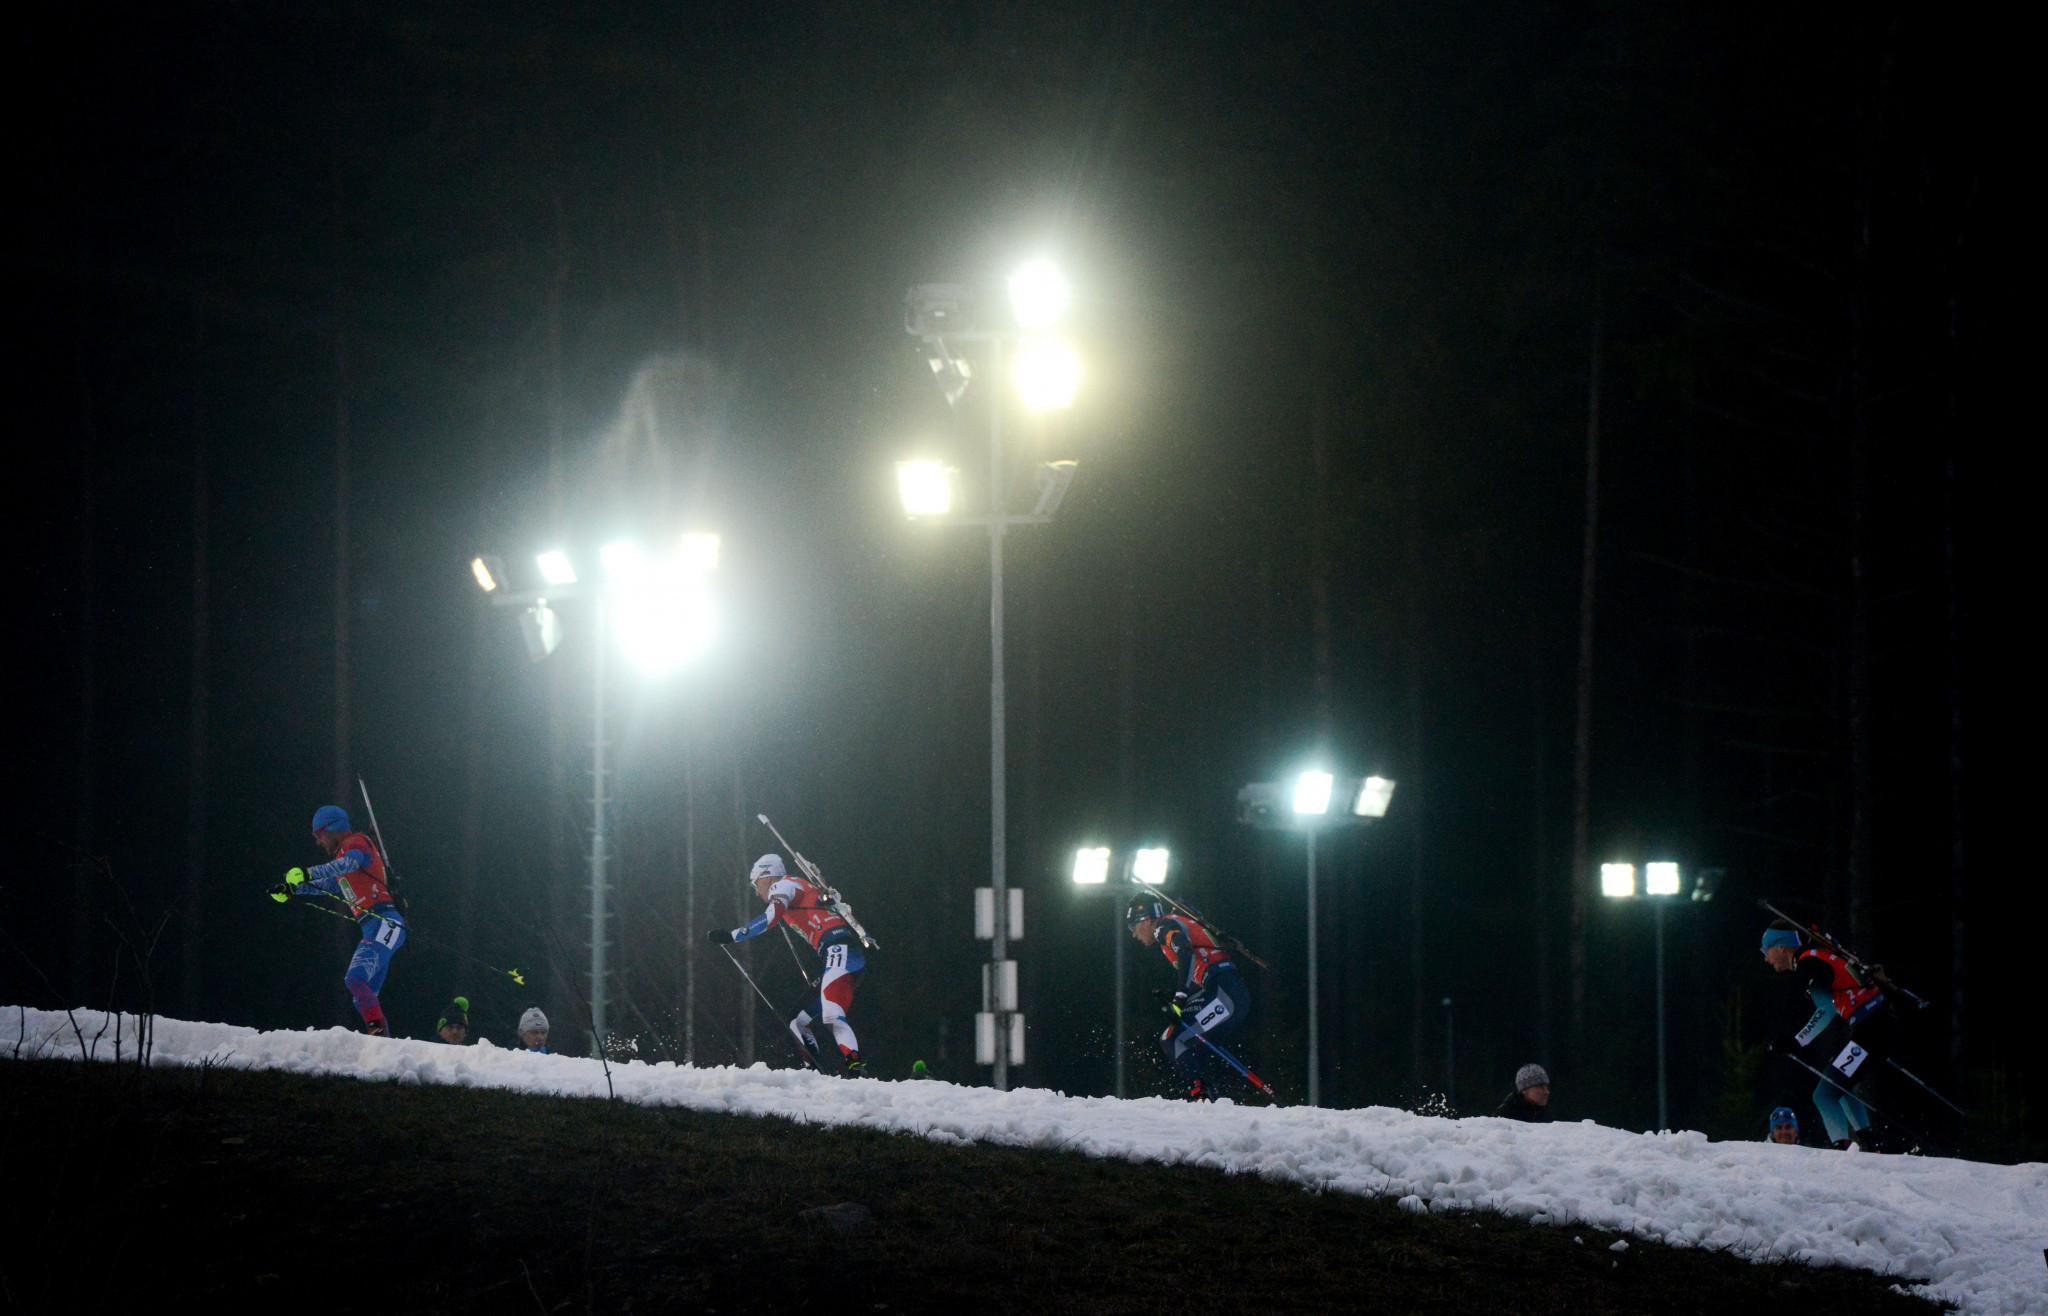 The three athletes competed at IBU Cup level last season ©Getty Images